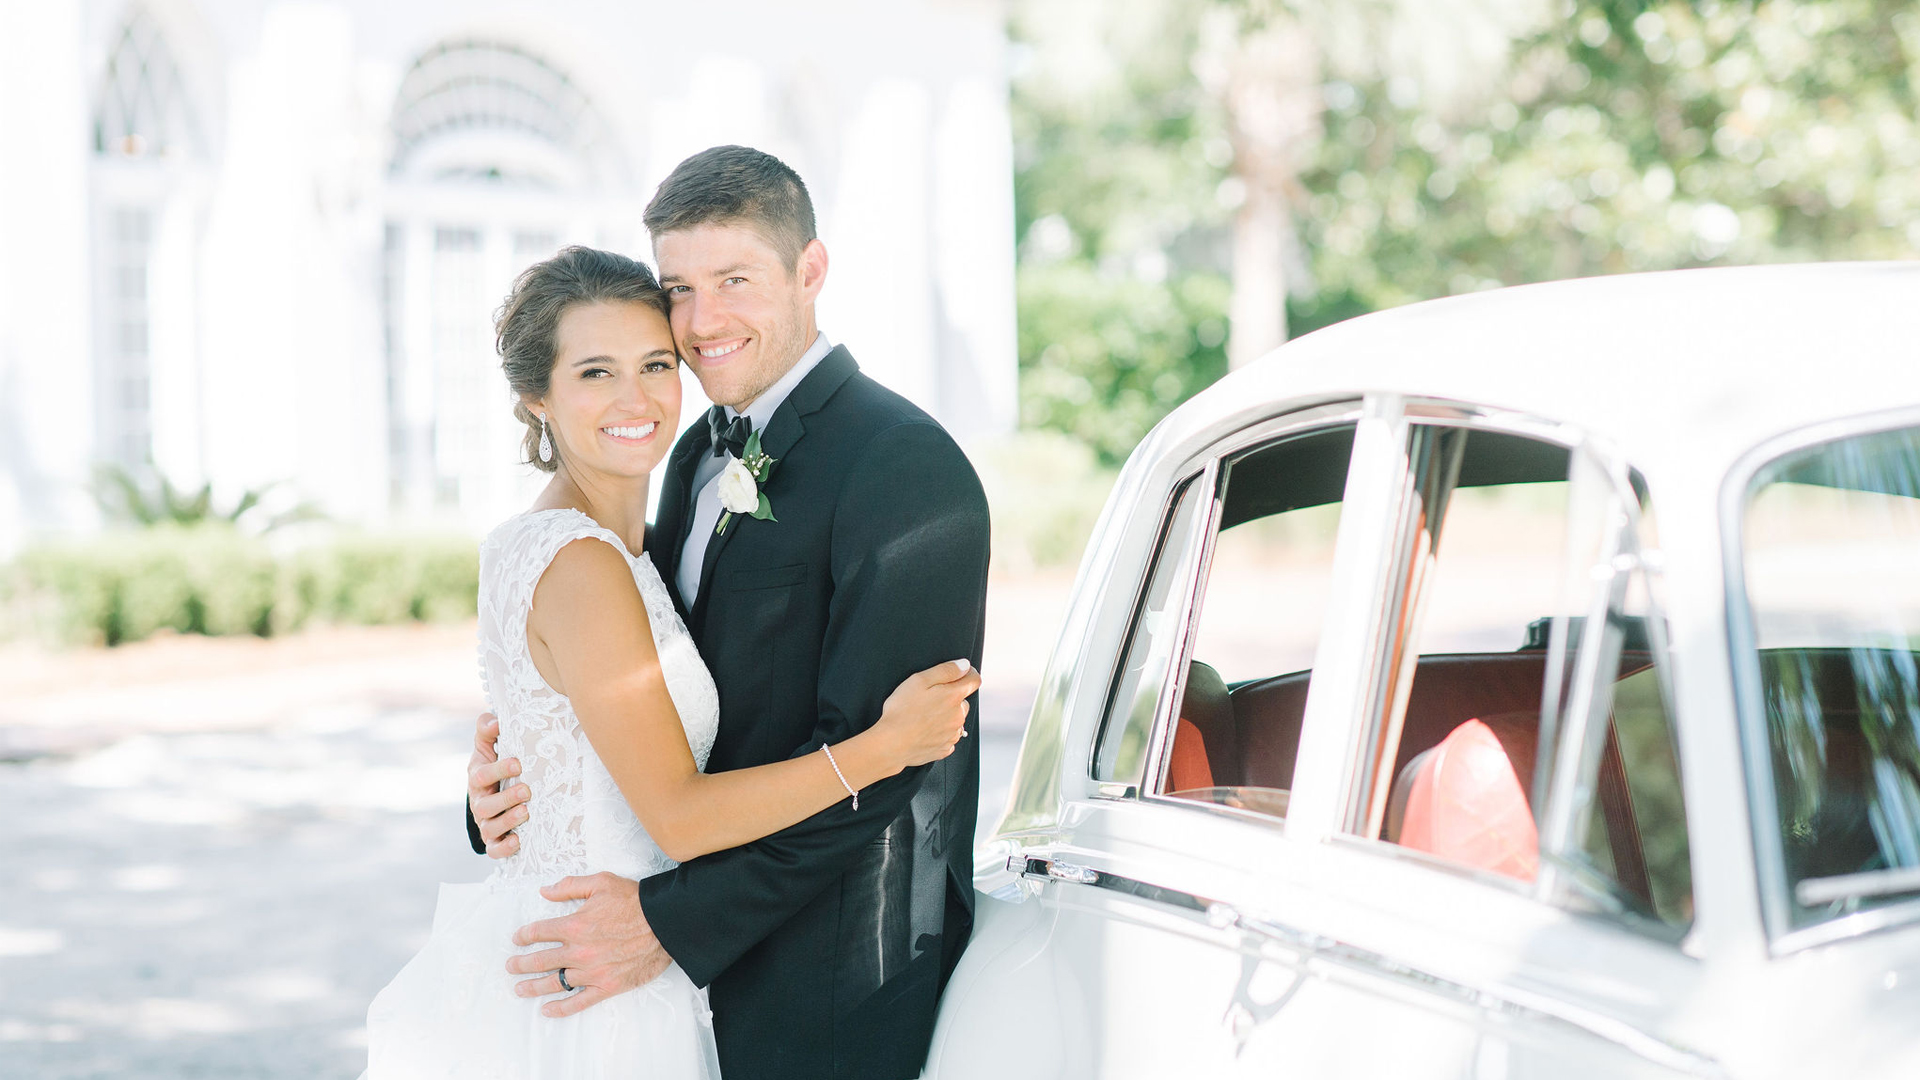 Carly + Sean | Charleston, South Carolina | Lowndes Grove